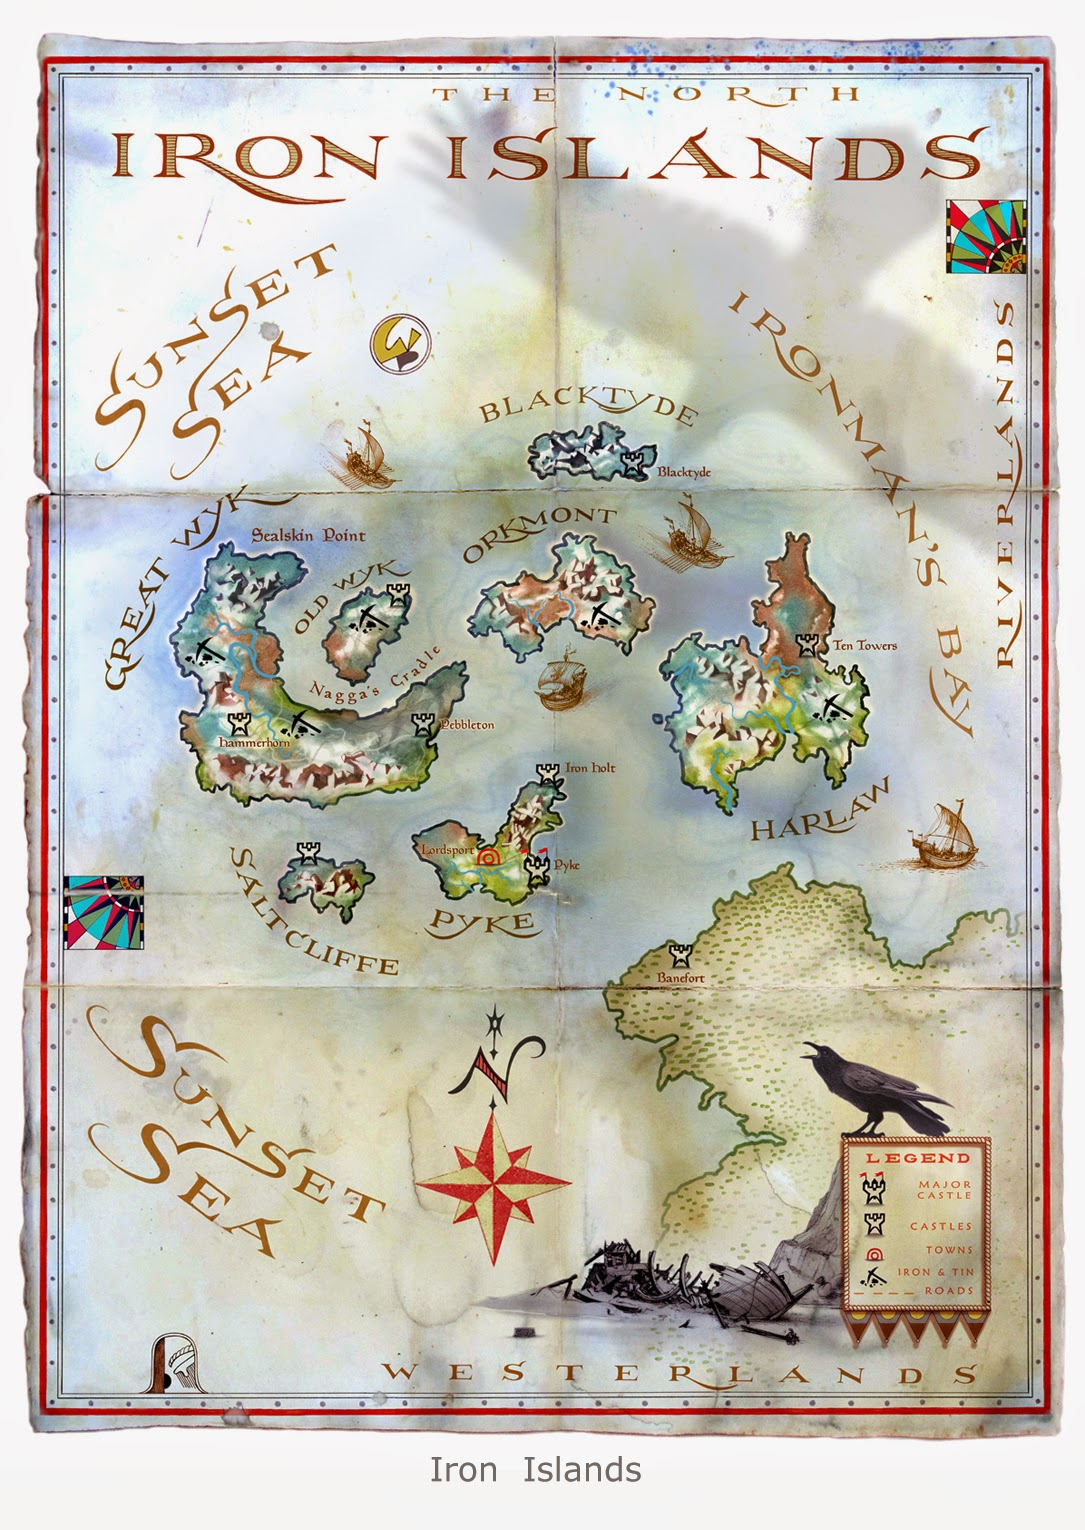 Map illustration by Michael Gellatly of the fictional land of Iron Islands from George R. R. Martin's The World of Ice and Fire. The Untold History of Westeros and The Game of Thrones